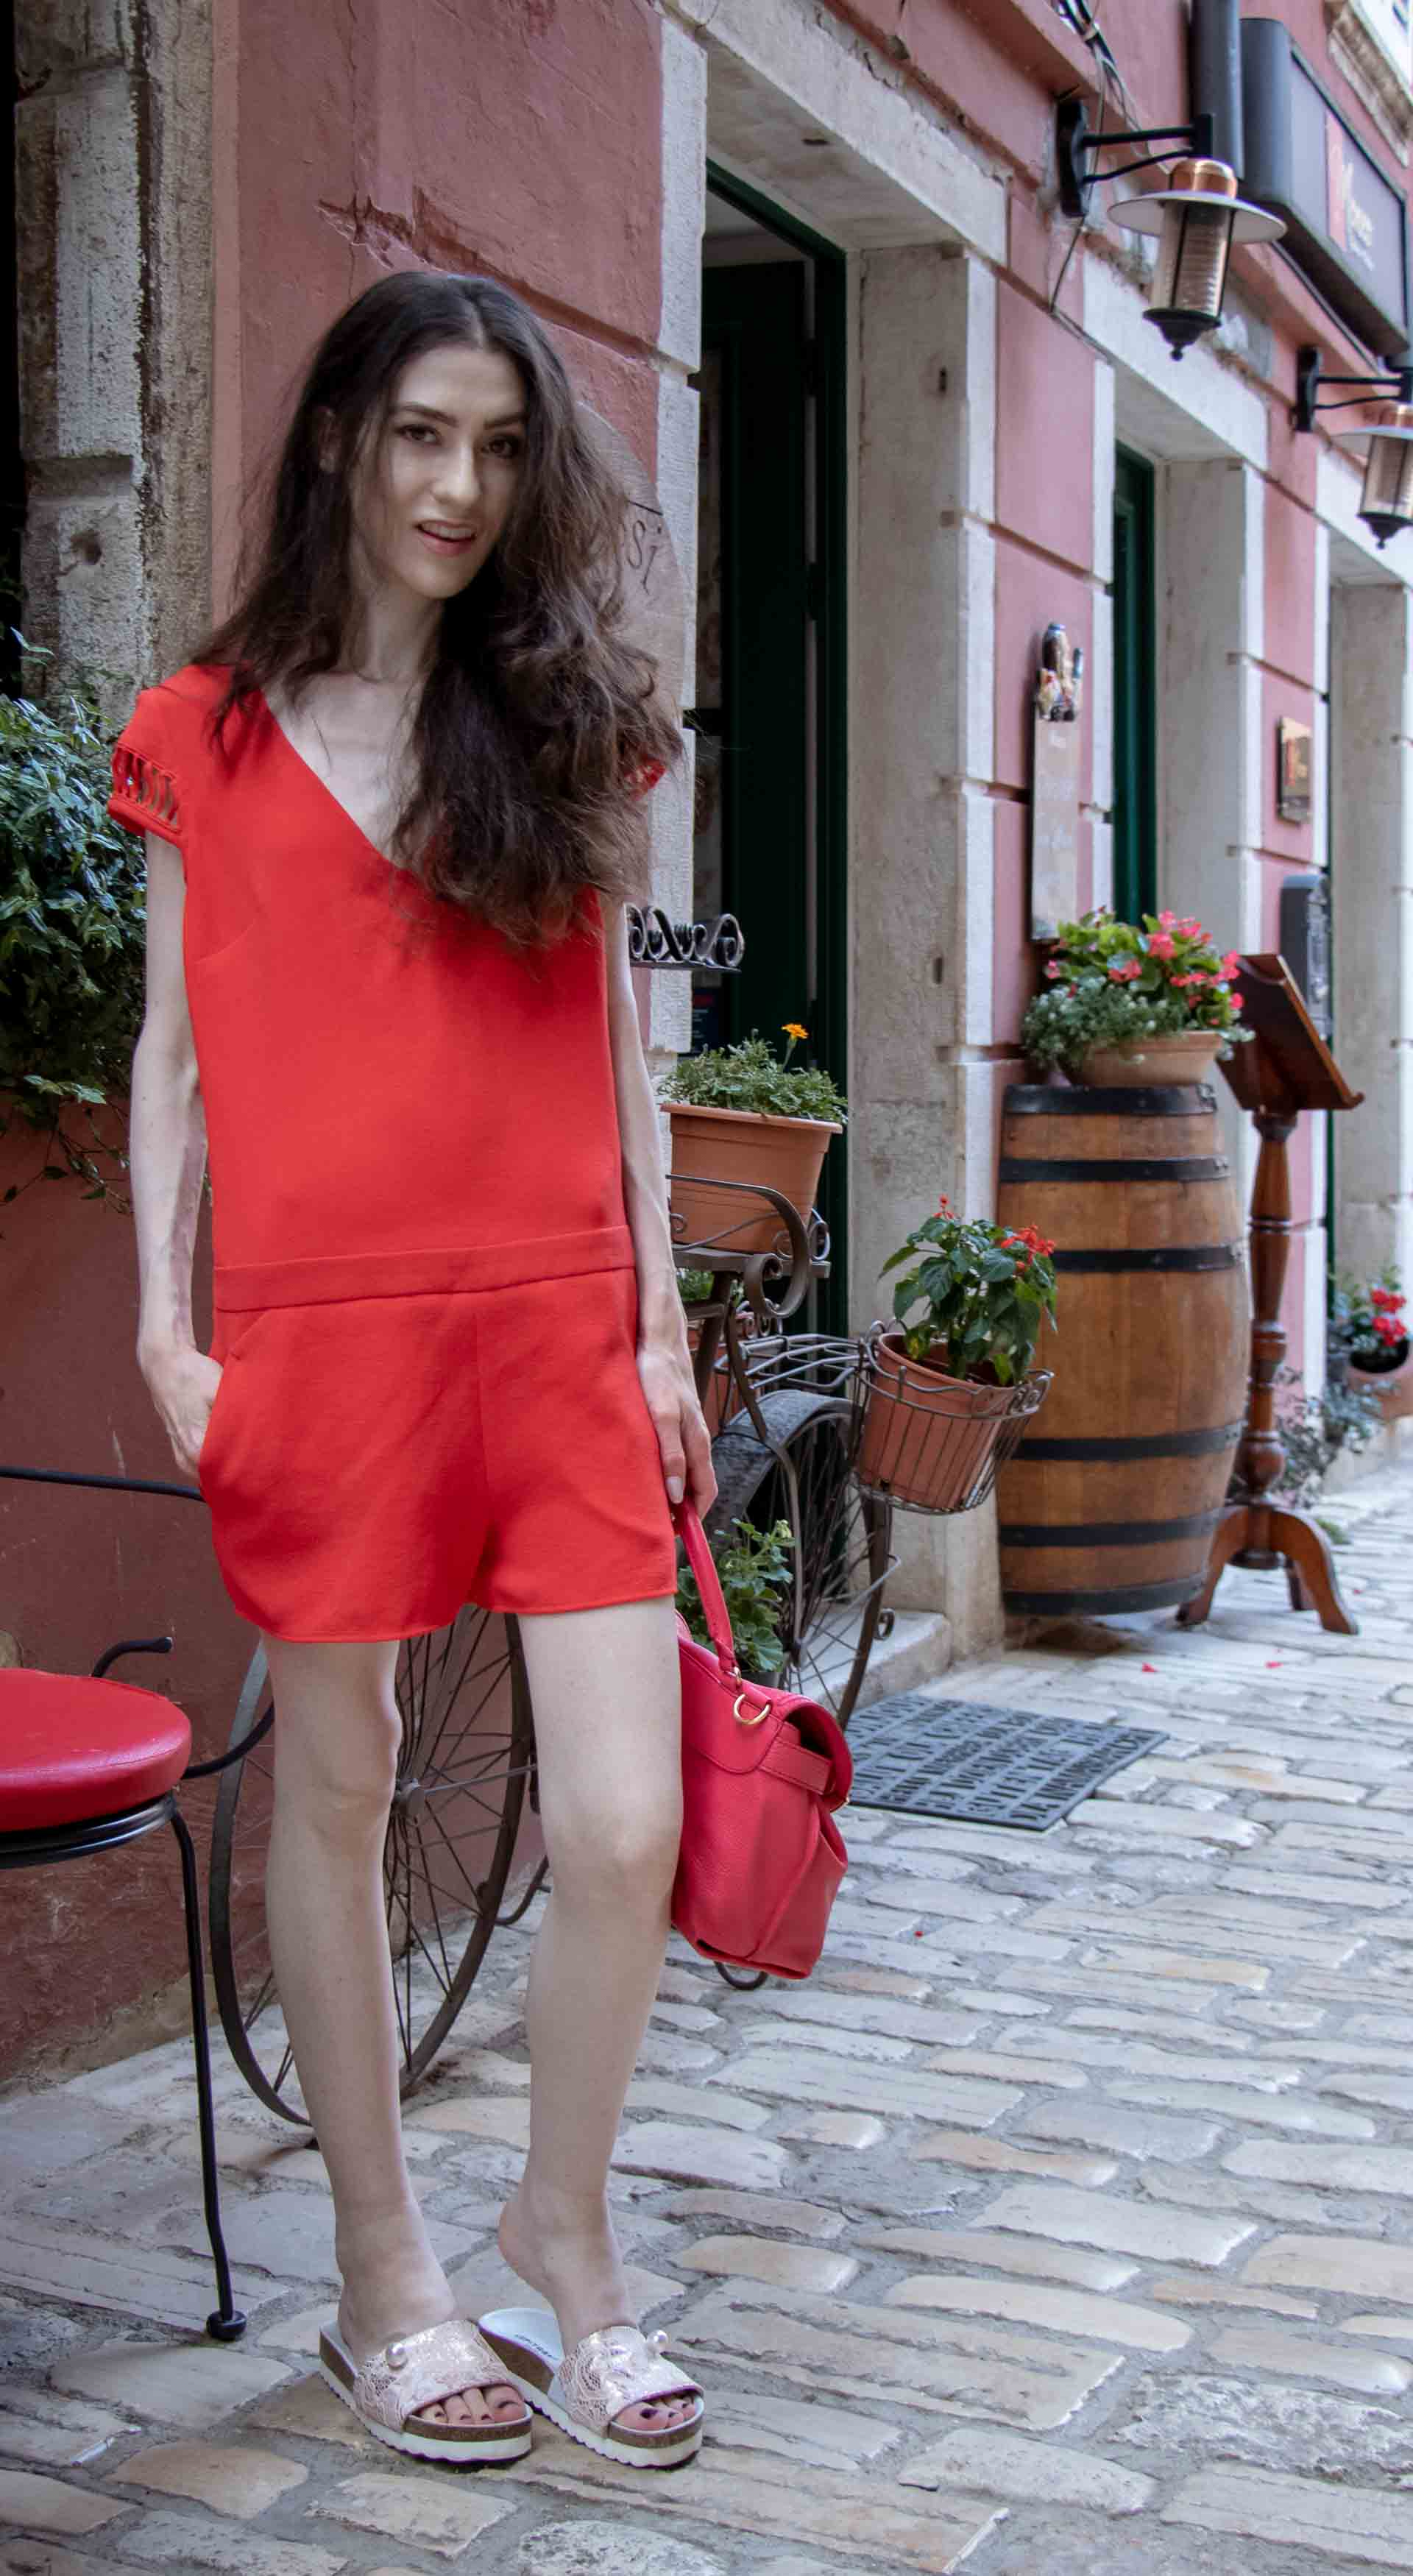 Fashion Blogger Veronika Lipar of Brunette from Wall Street dressed in open back chic red romper, crystal-embellished lace luxe pool slides, pink top handle bag while standing on the narrow picturesque street in Rovinj